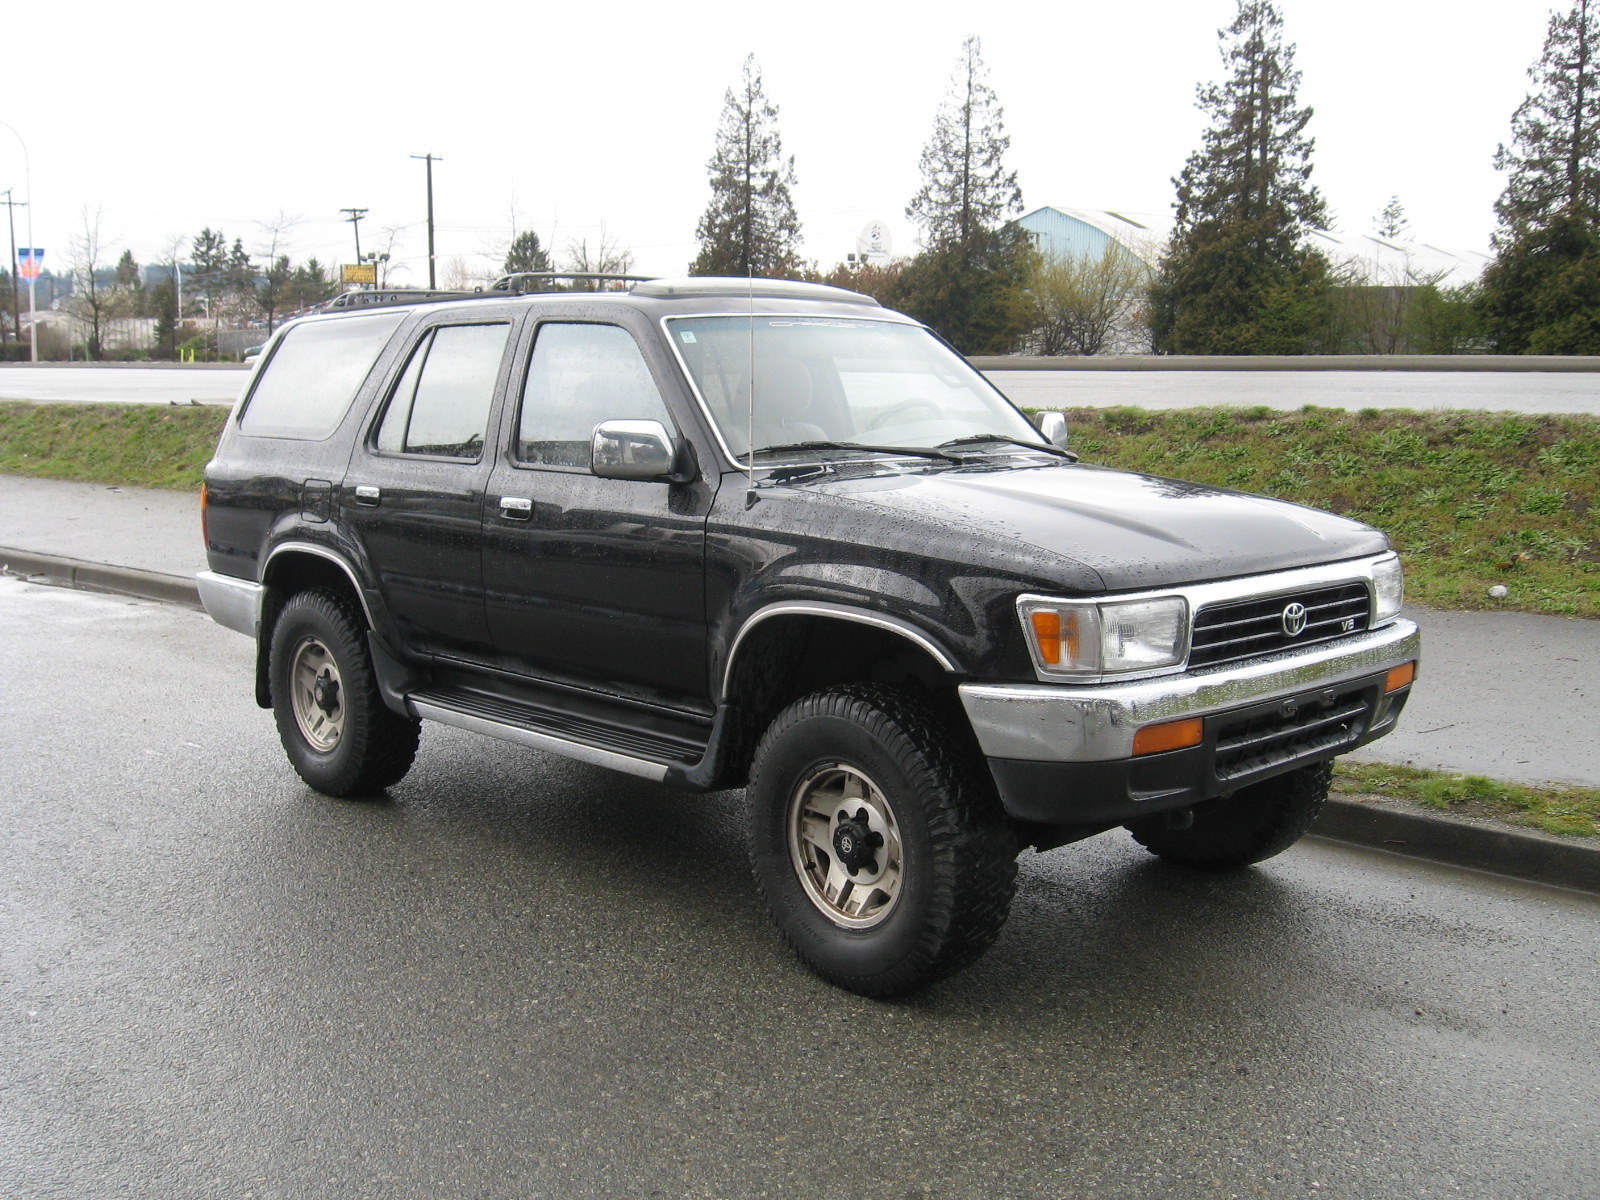 2010 4runner sr5 for sale used toyota 4runners amp sales. Black Bedroom Furniture Sets. Home Design Ideas